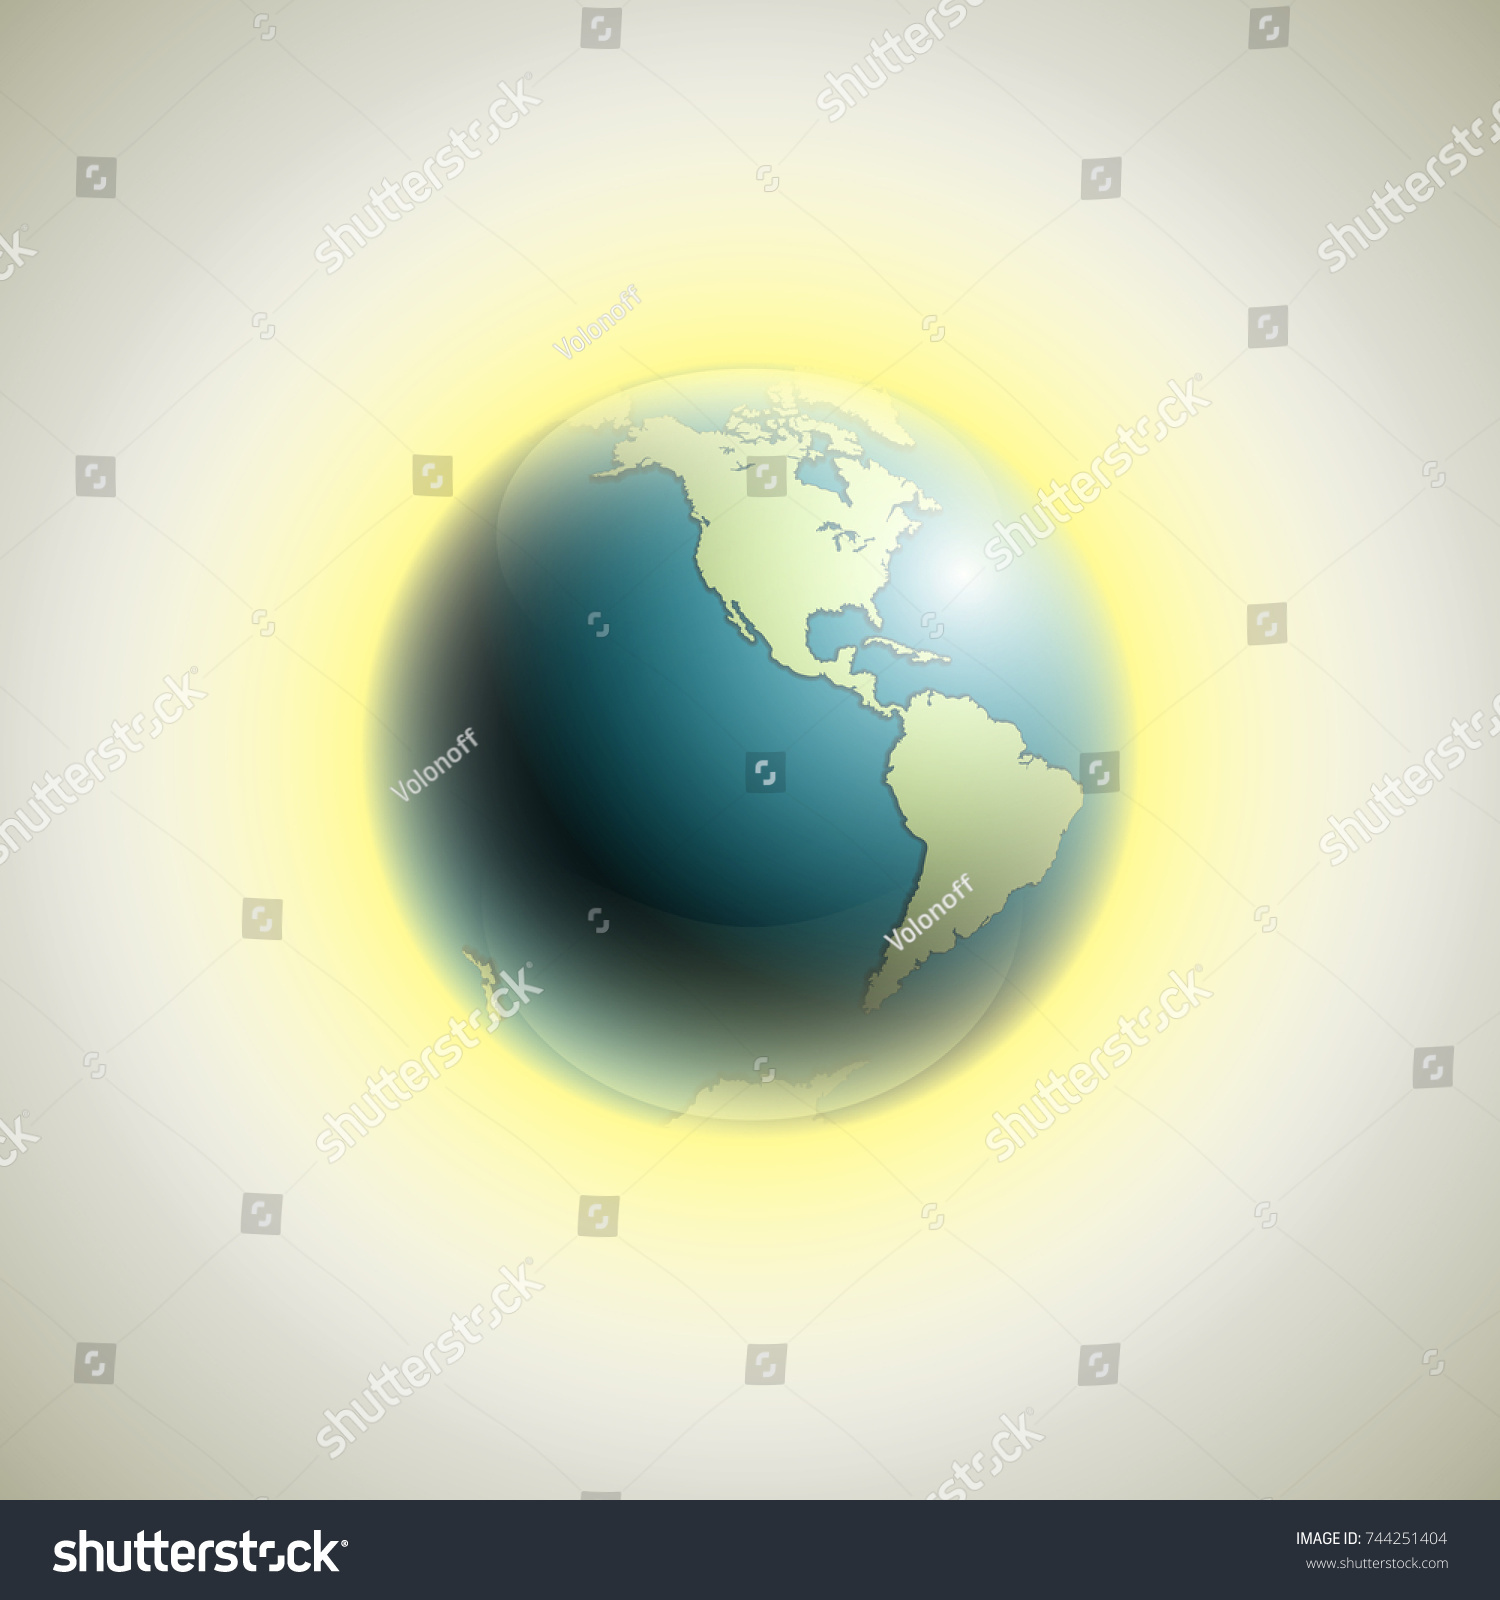 World map rising sun banner globe stock vector 744251404 shutterstock world map with rising sun banner globe icon in space sunlight poster planet earth gumiabroncs Image collections